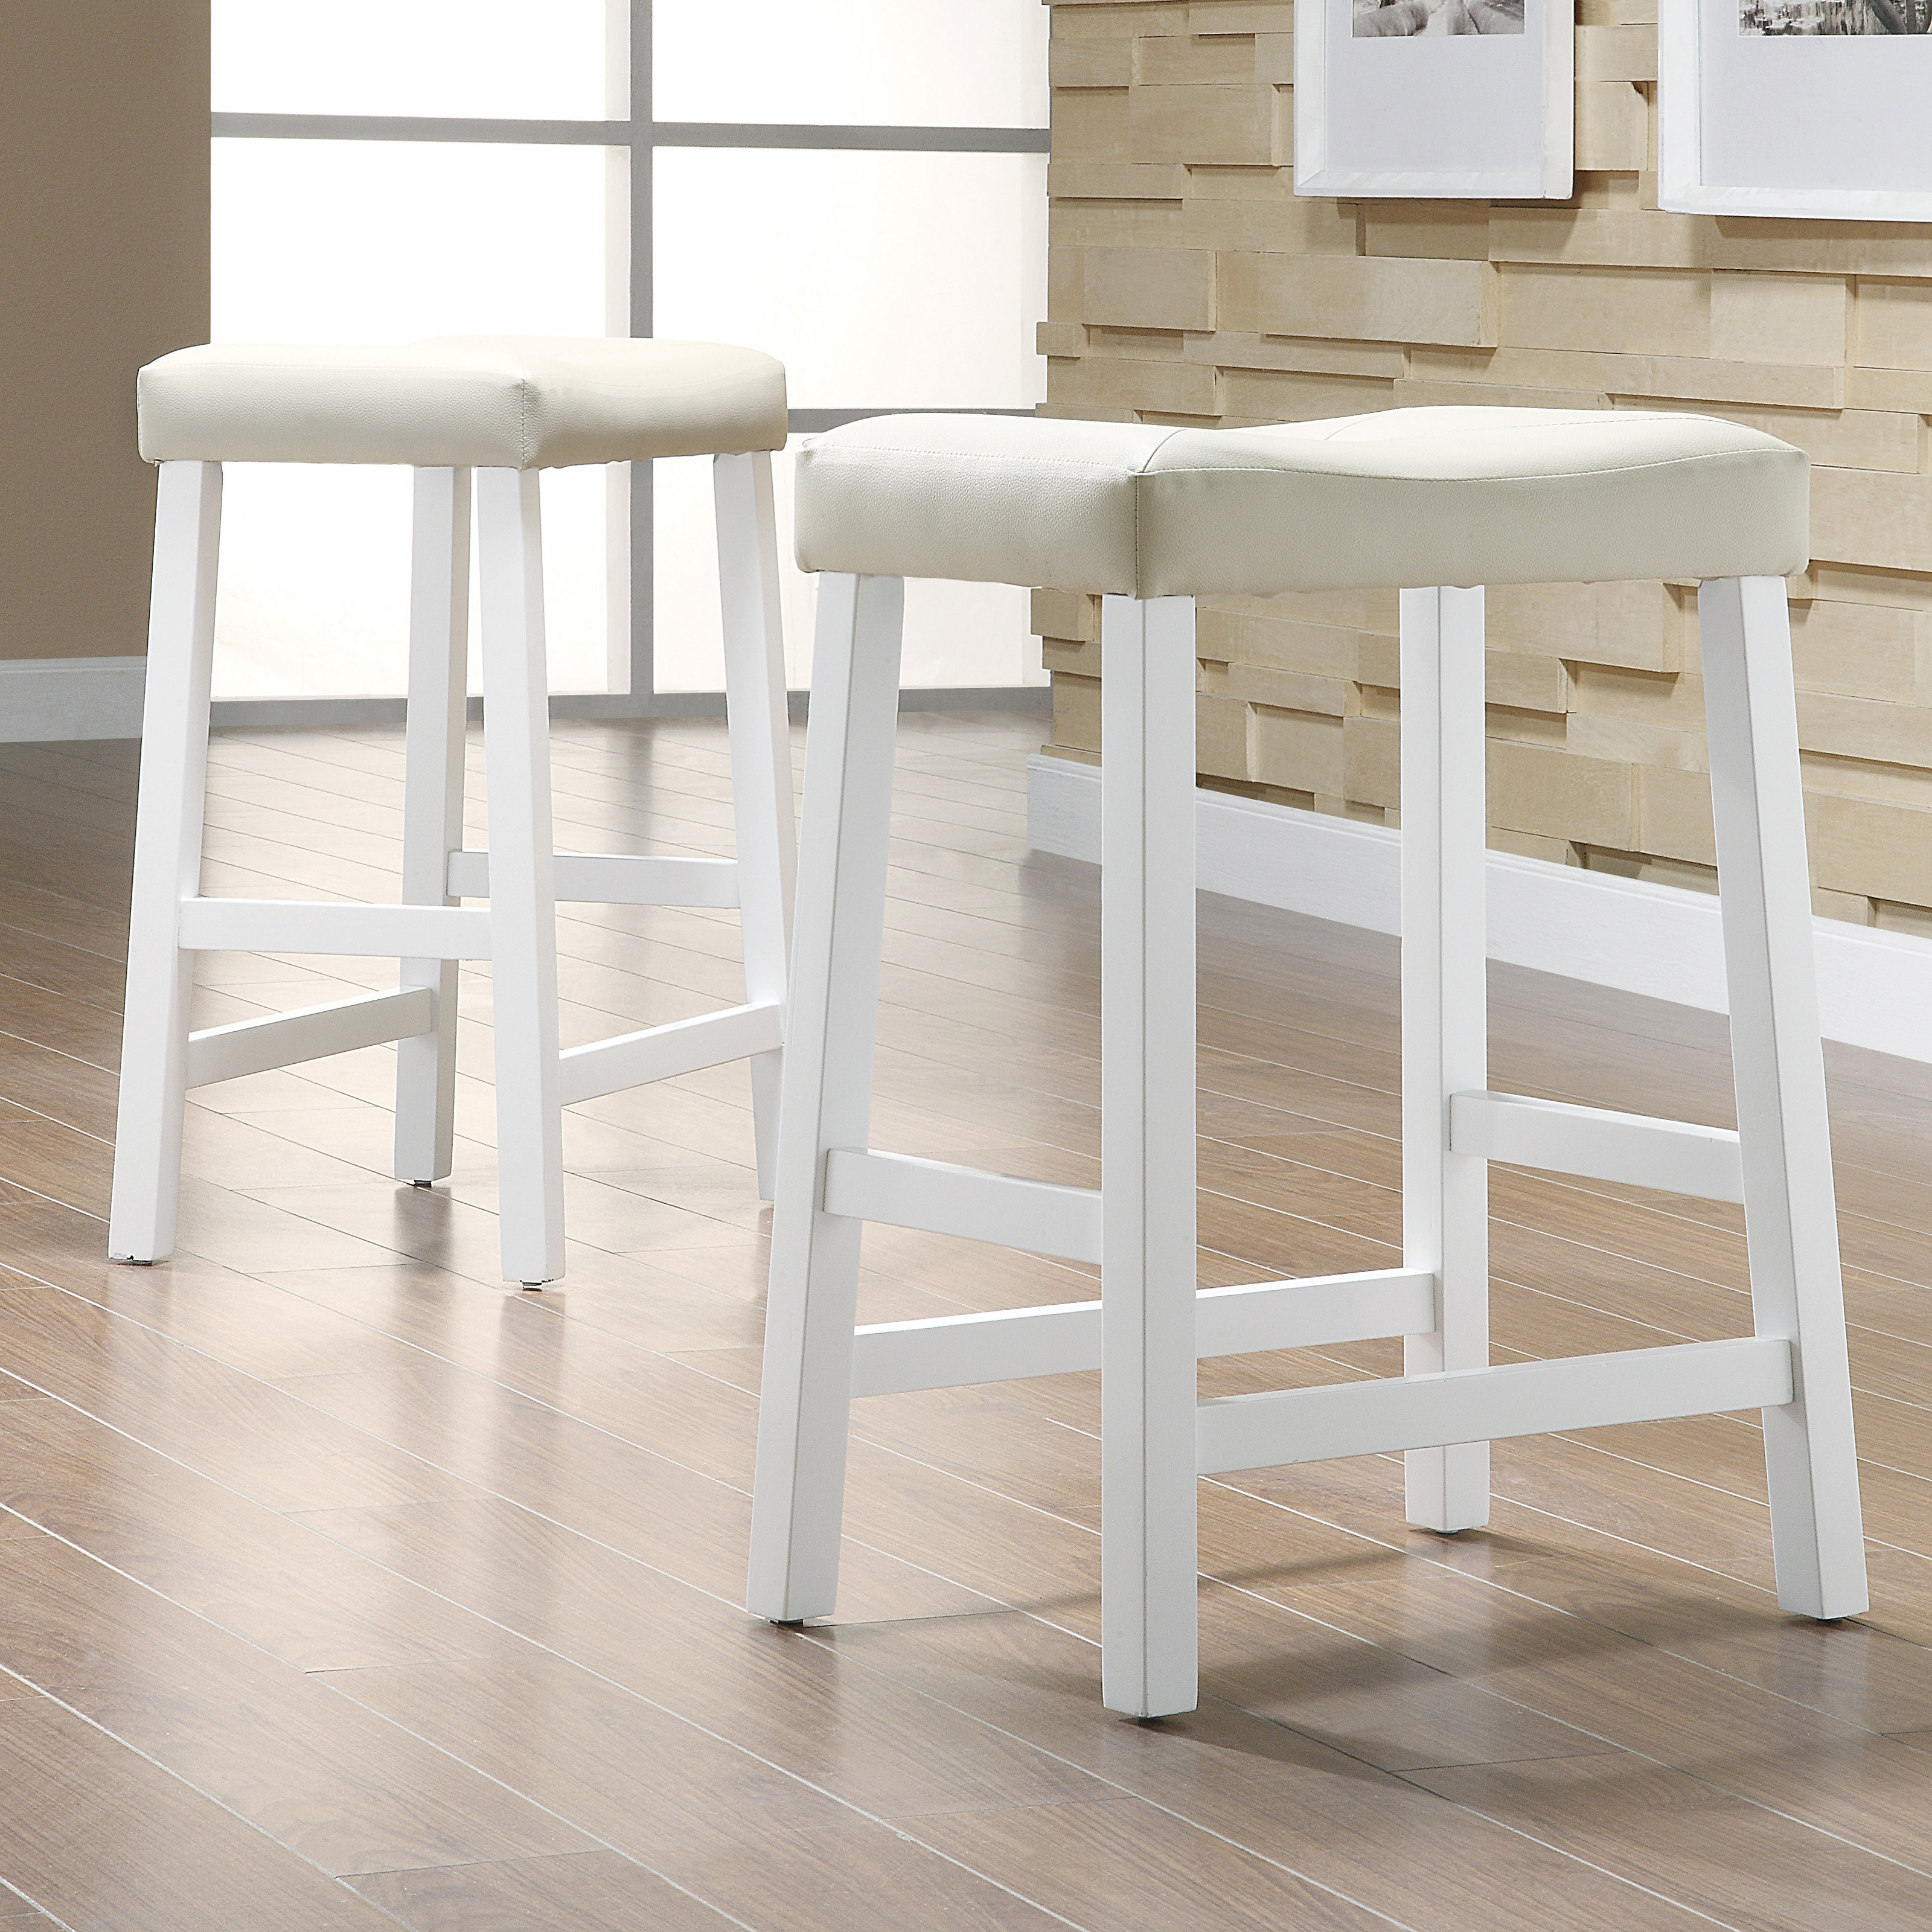 Weston Home Scottsdale Saddle Counter Stool White - Set of 2